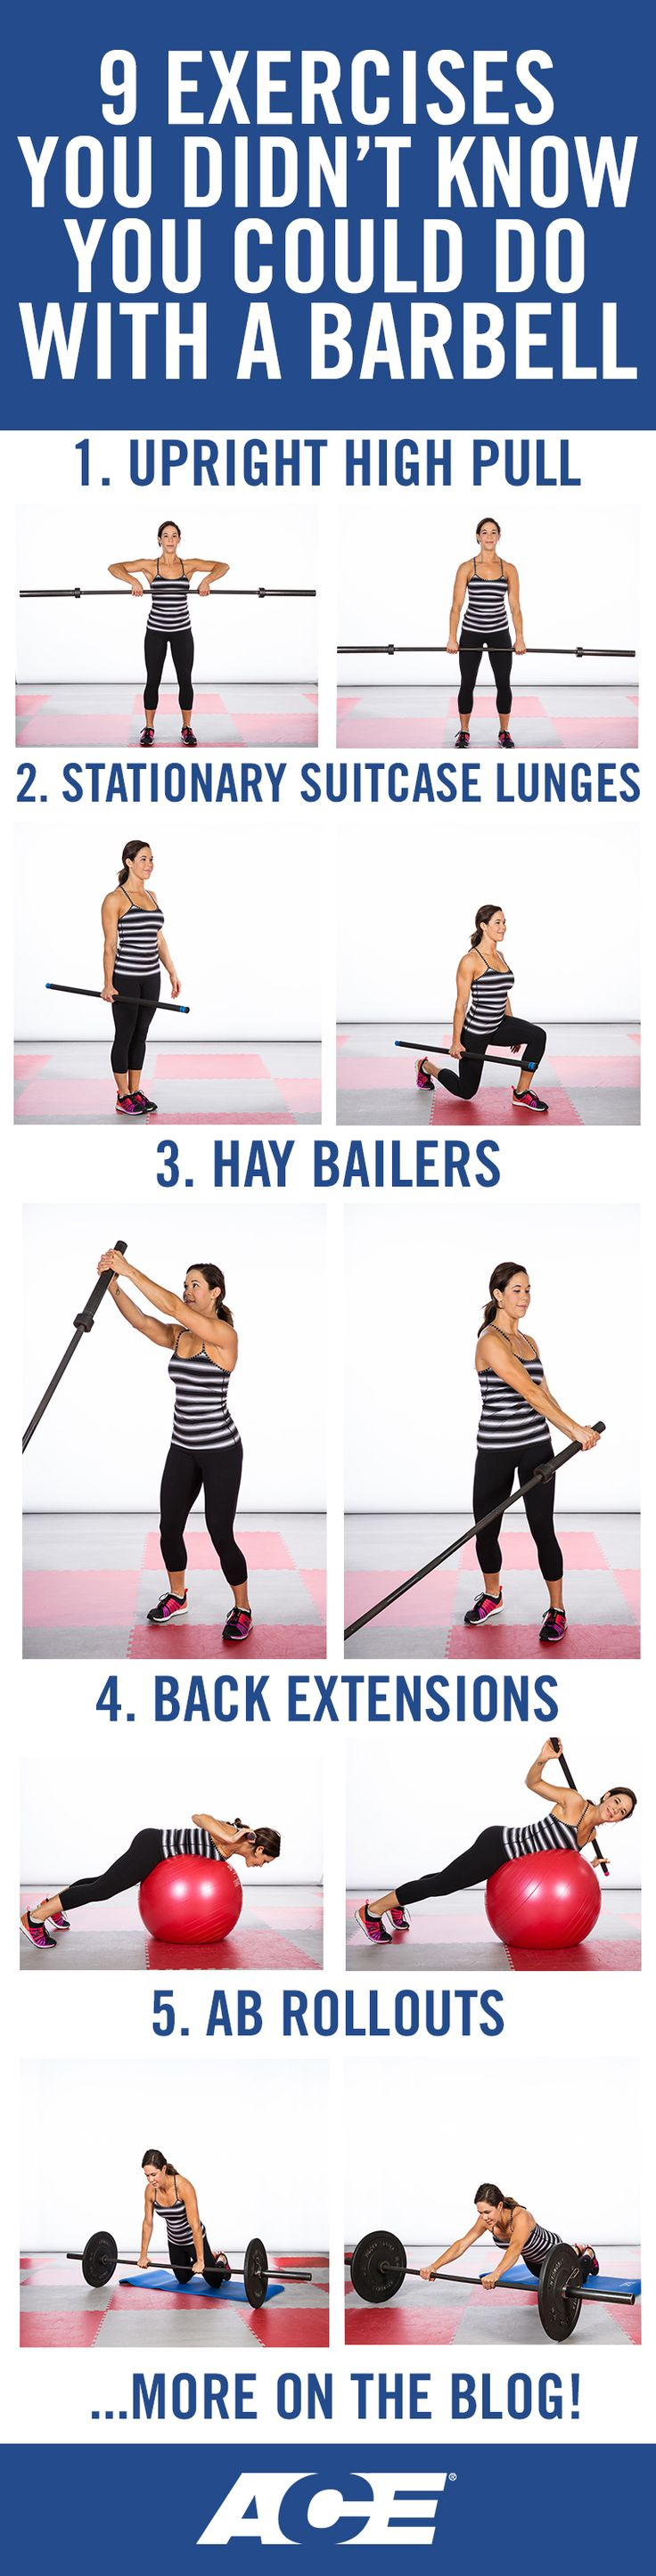 9 Exercises You Didn't Know You Could Do With a Barbell